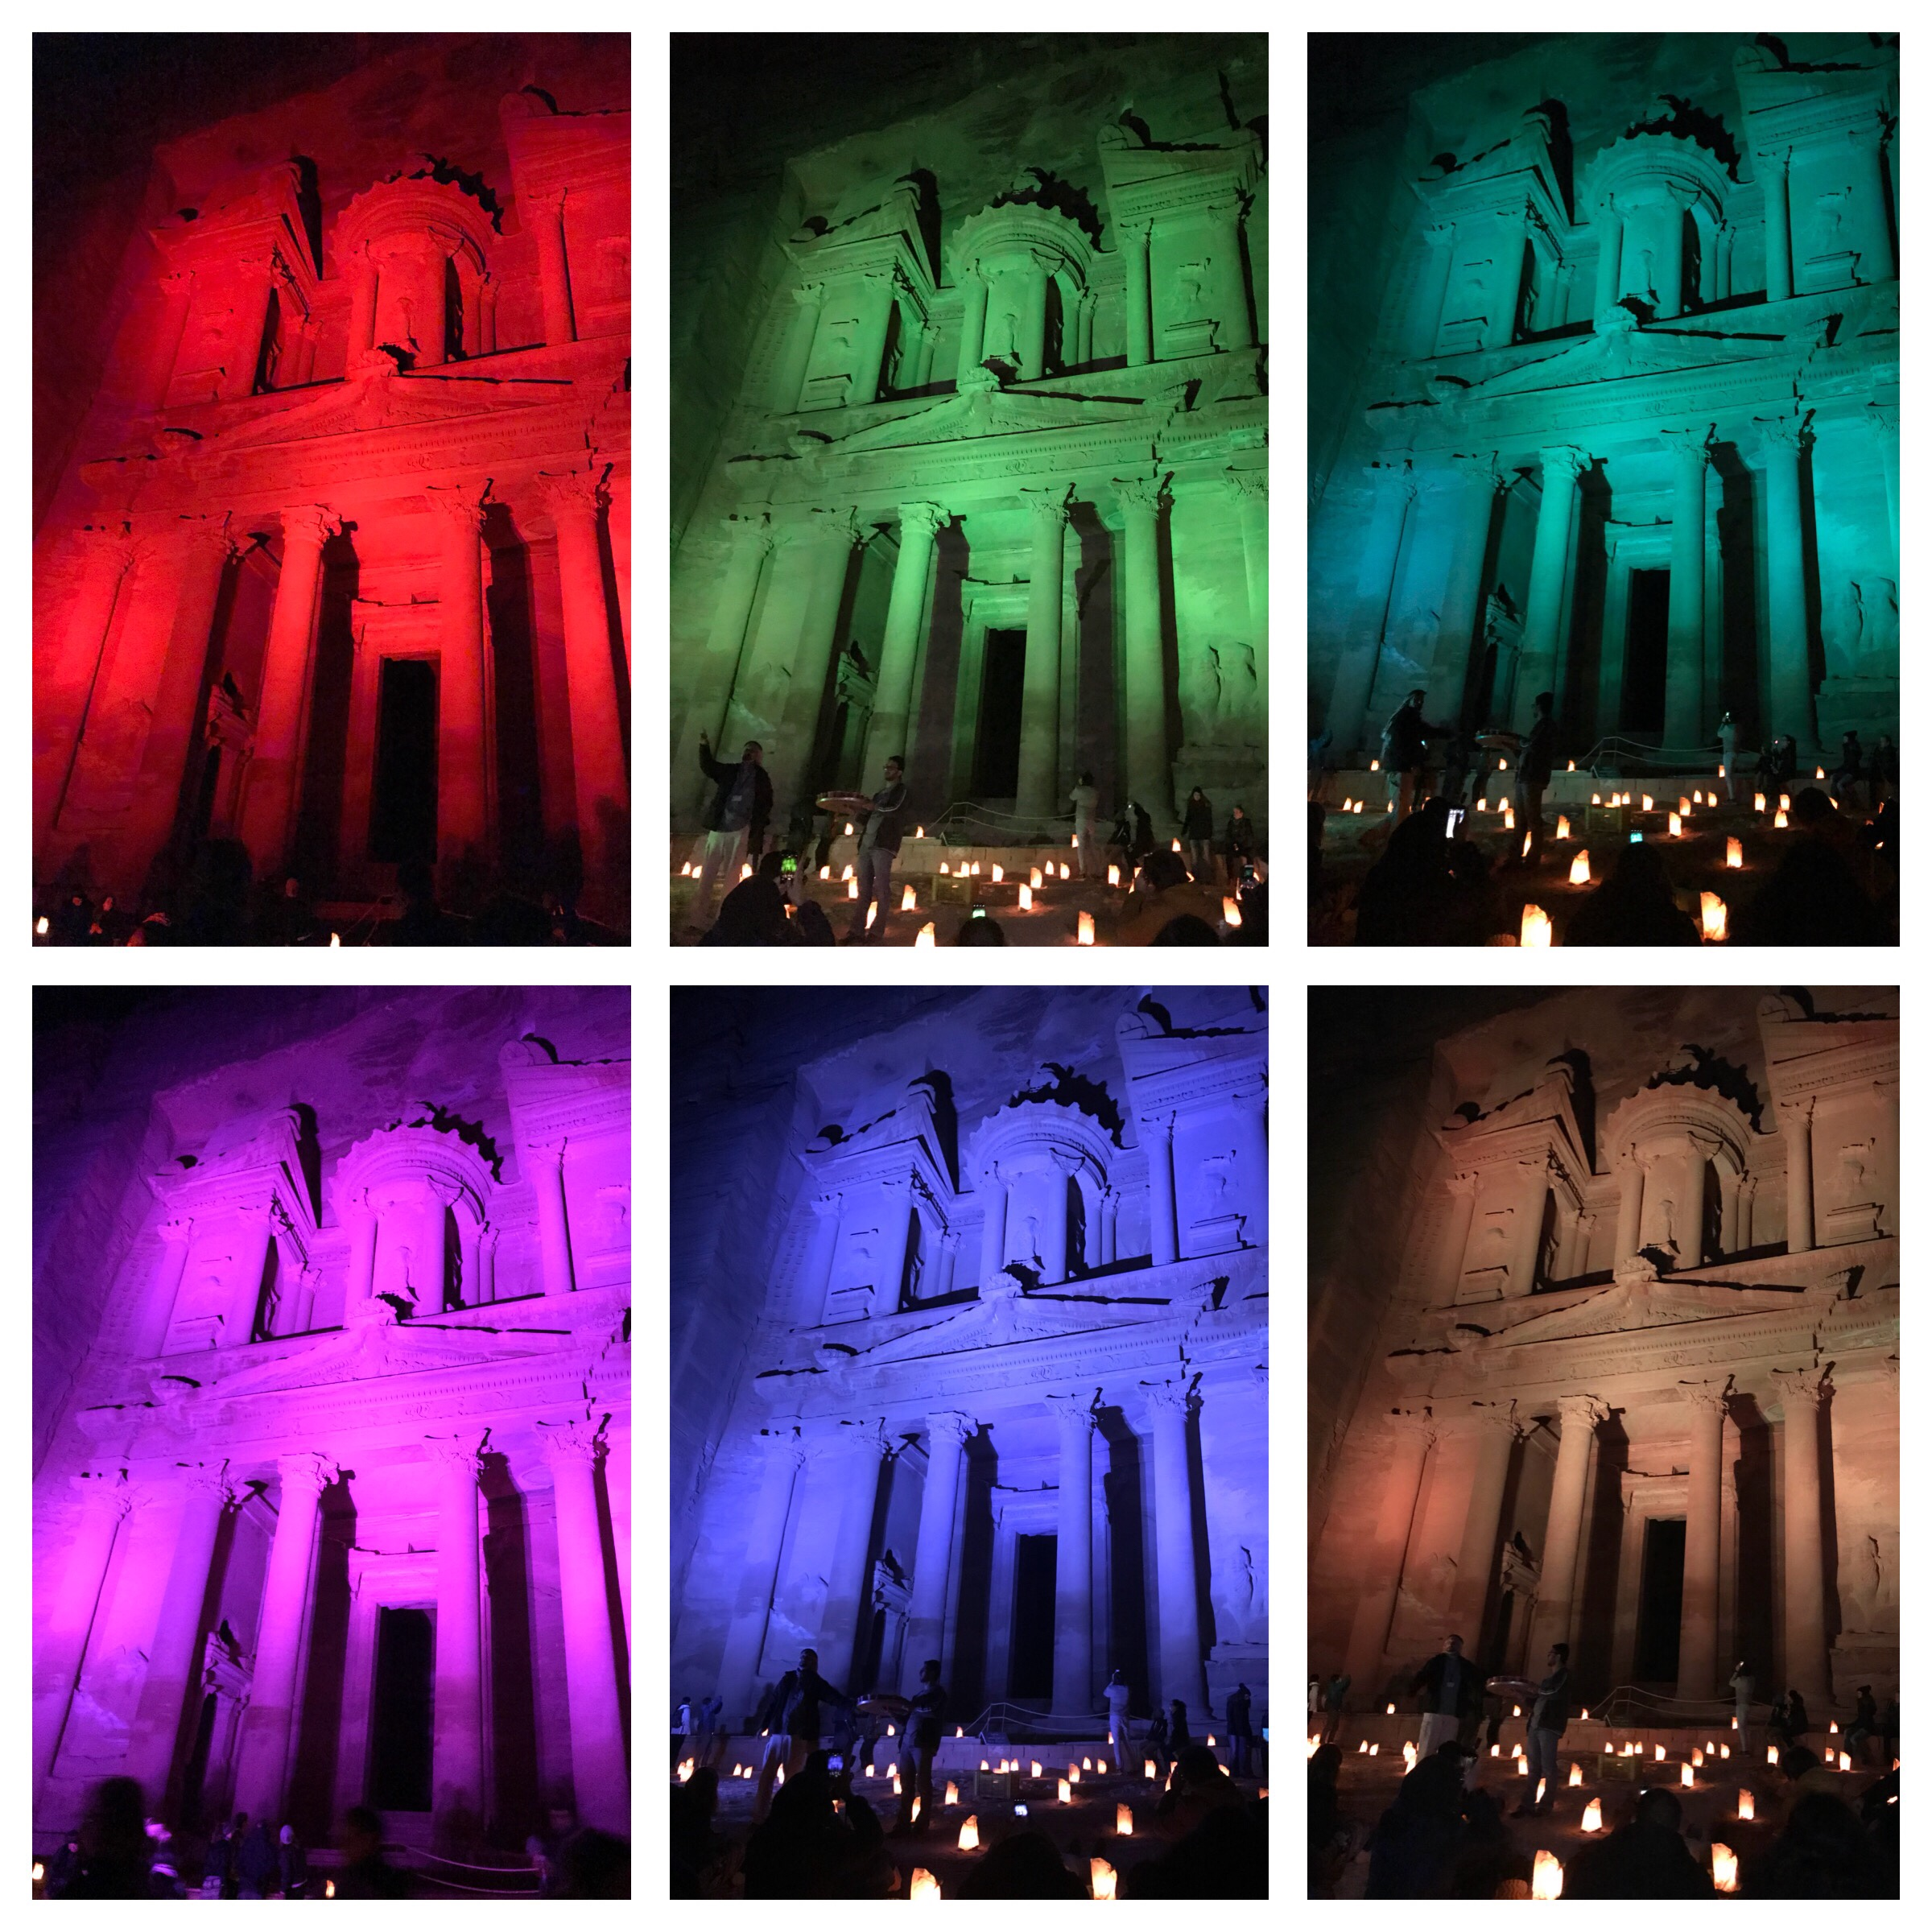 The Treasury lit up in (from left to right) red, green and turquoise (top) and purple, blue and orange (bottom)